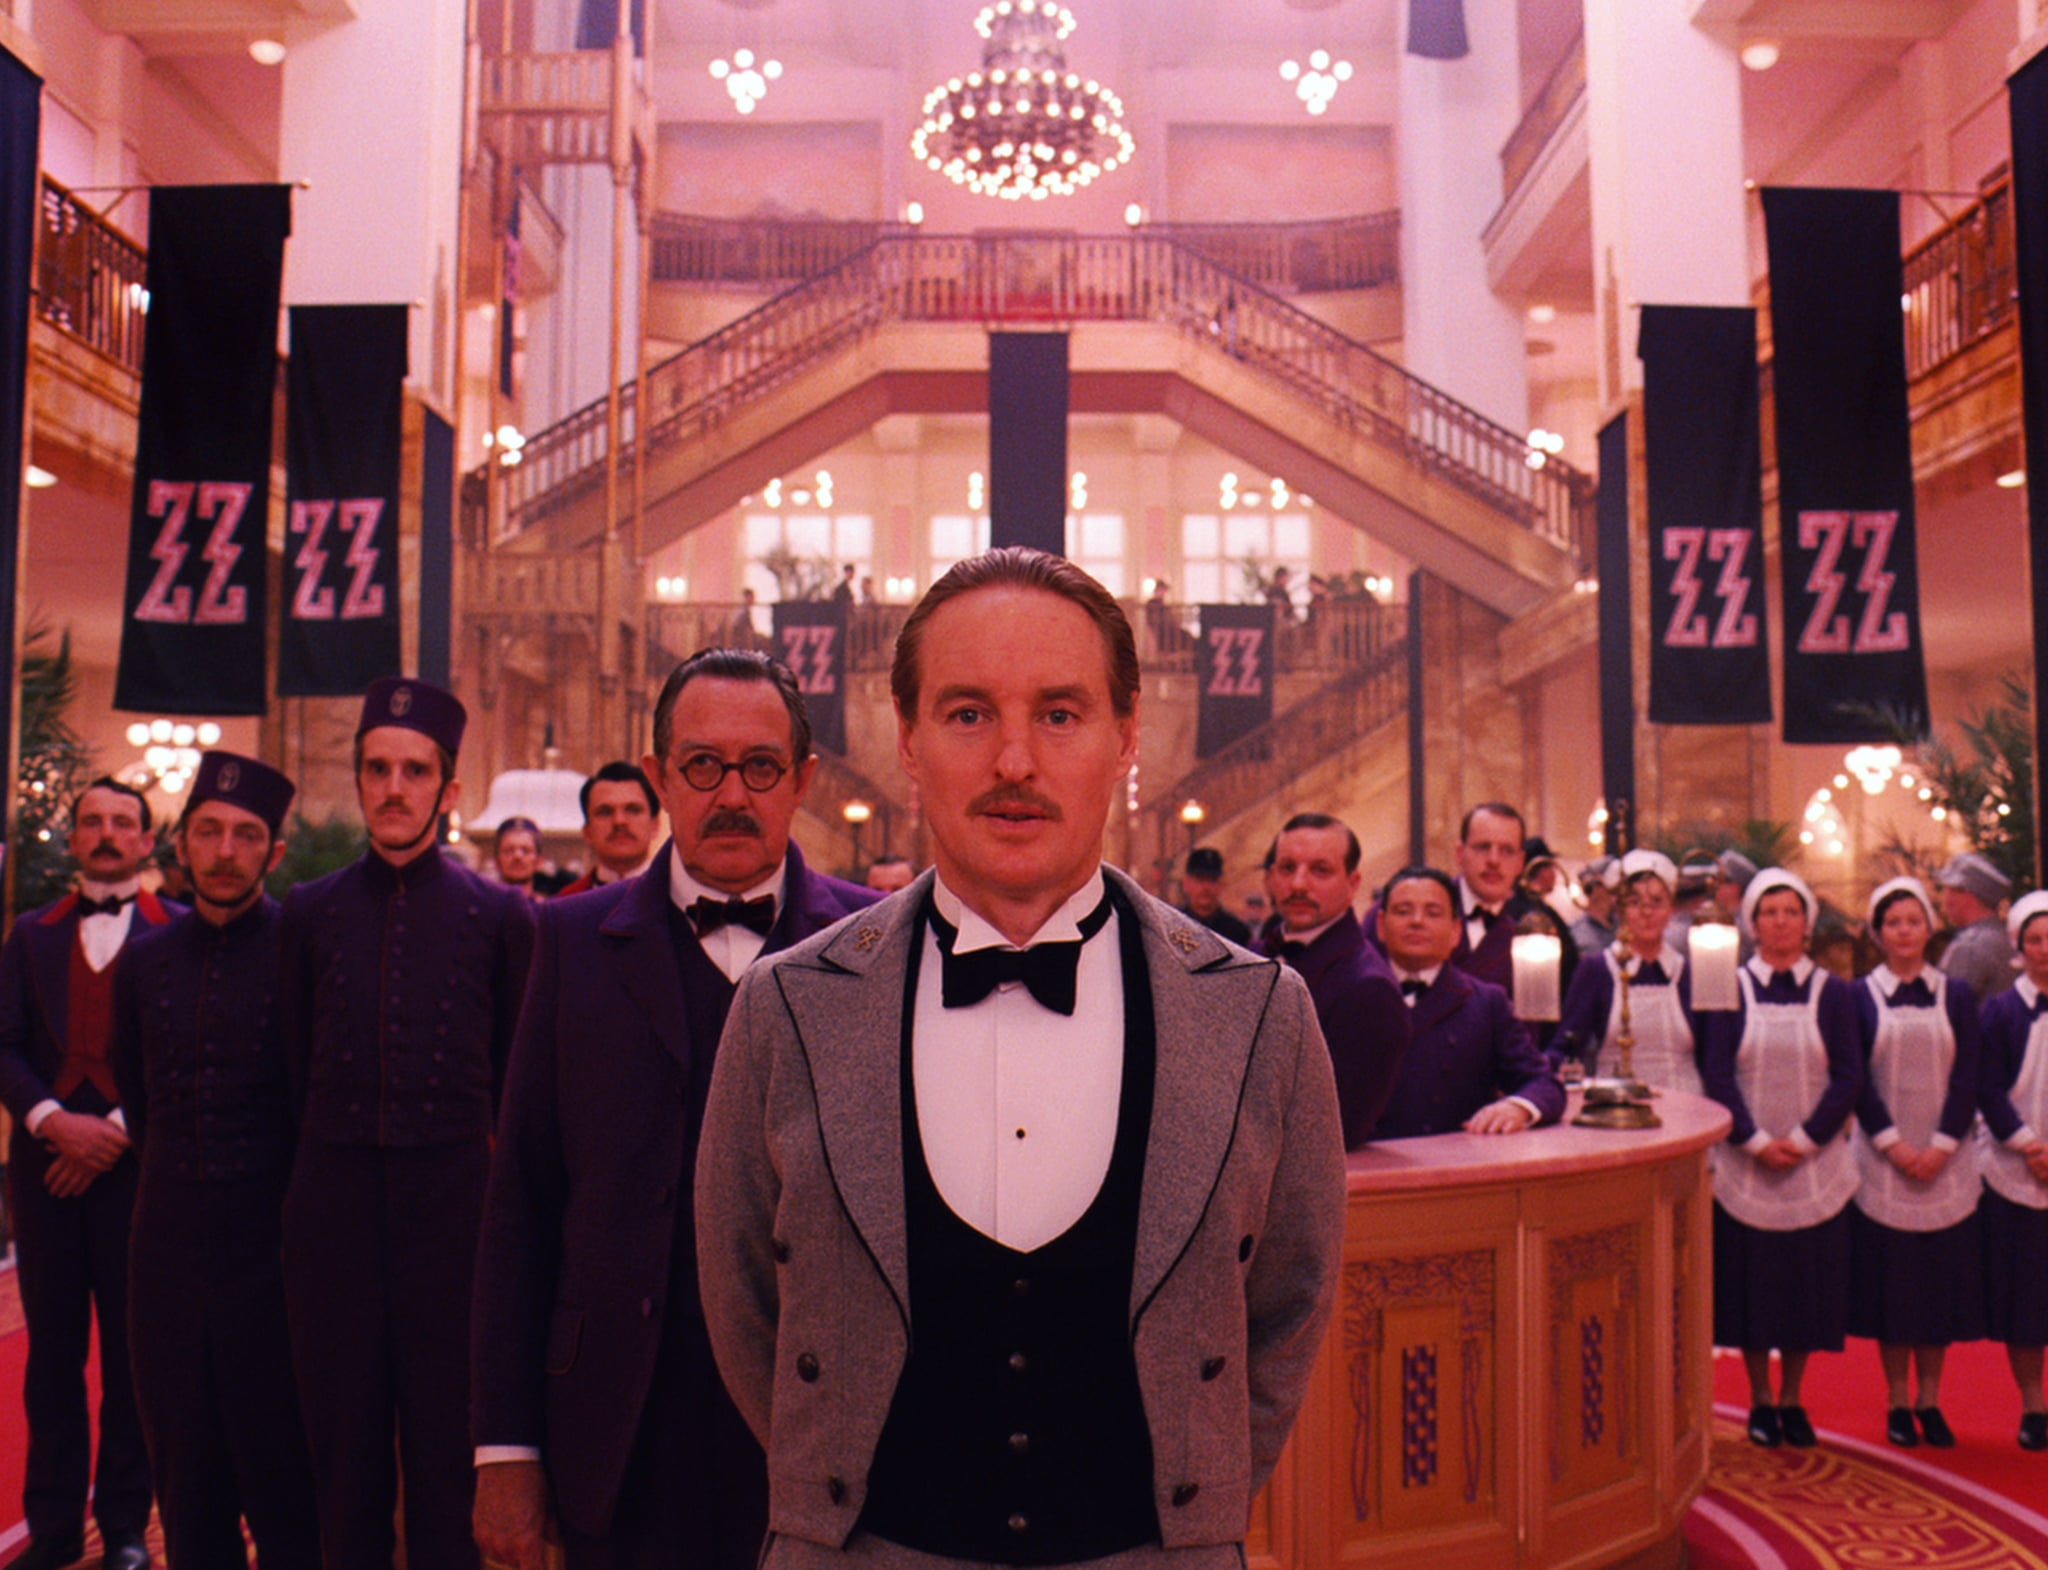 THE GRAND BUDAPEST HOTEL, Tom Wilkinson (left of center), Owen Wilson (front), 2014. /TM and Copyright Fox Searchlight Pictures/courtesy Everett Collection